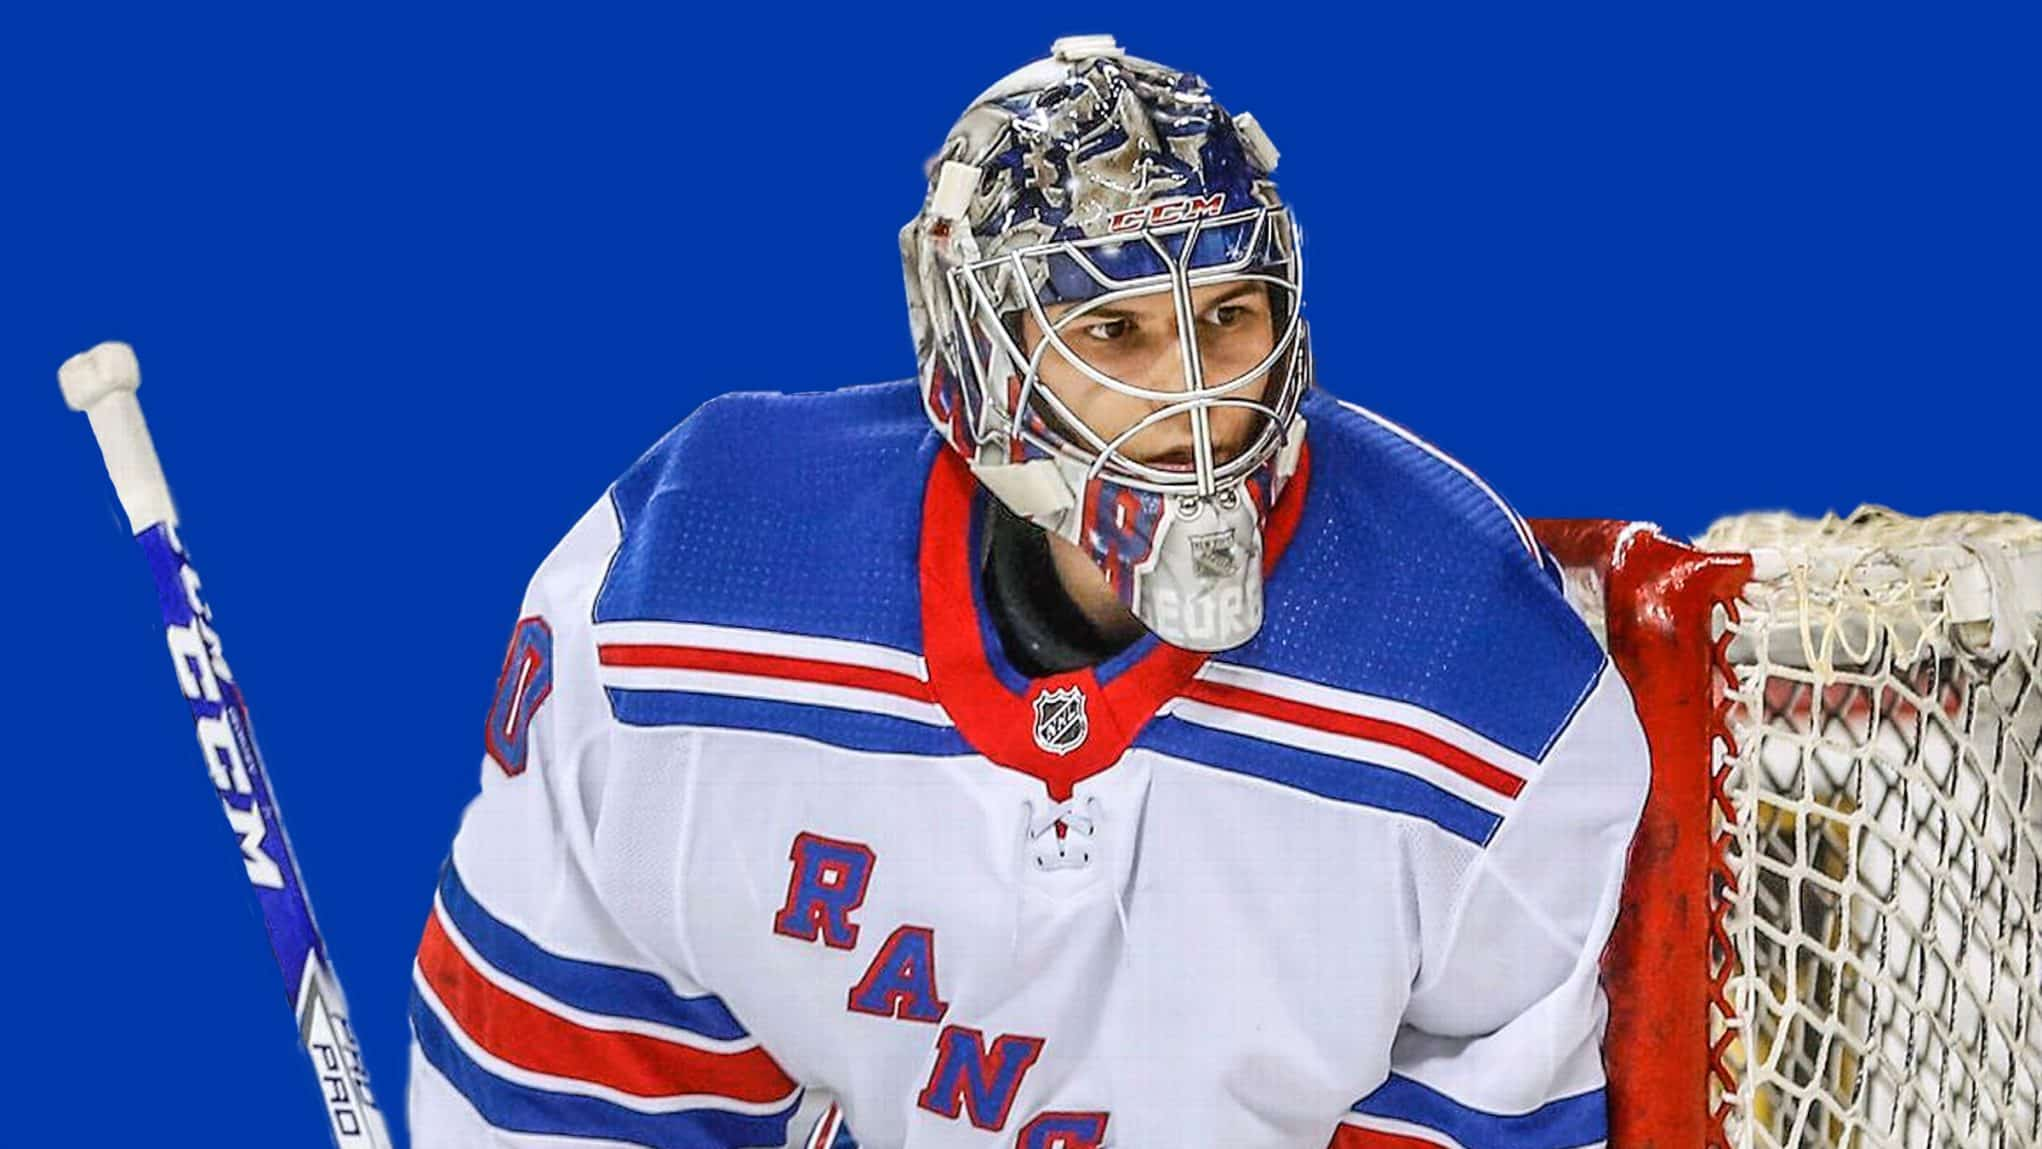 New York Rangers Alexandar Georgiev From Backing Up The King To Wc